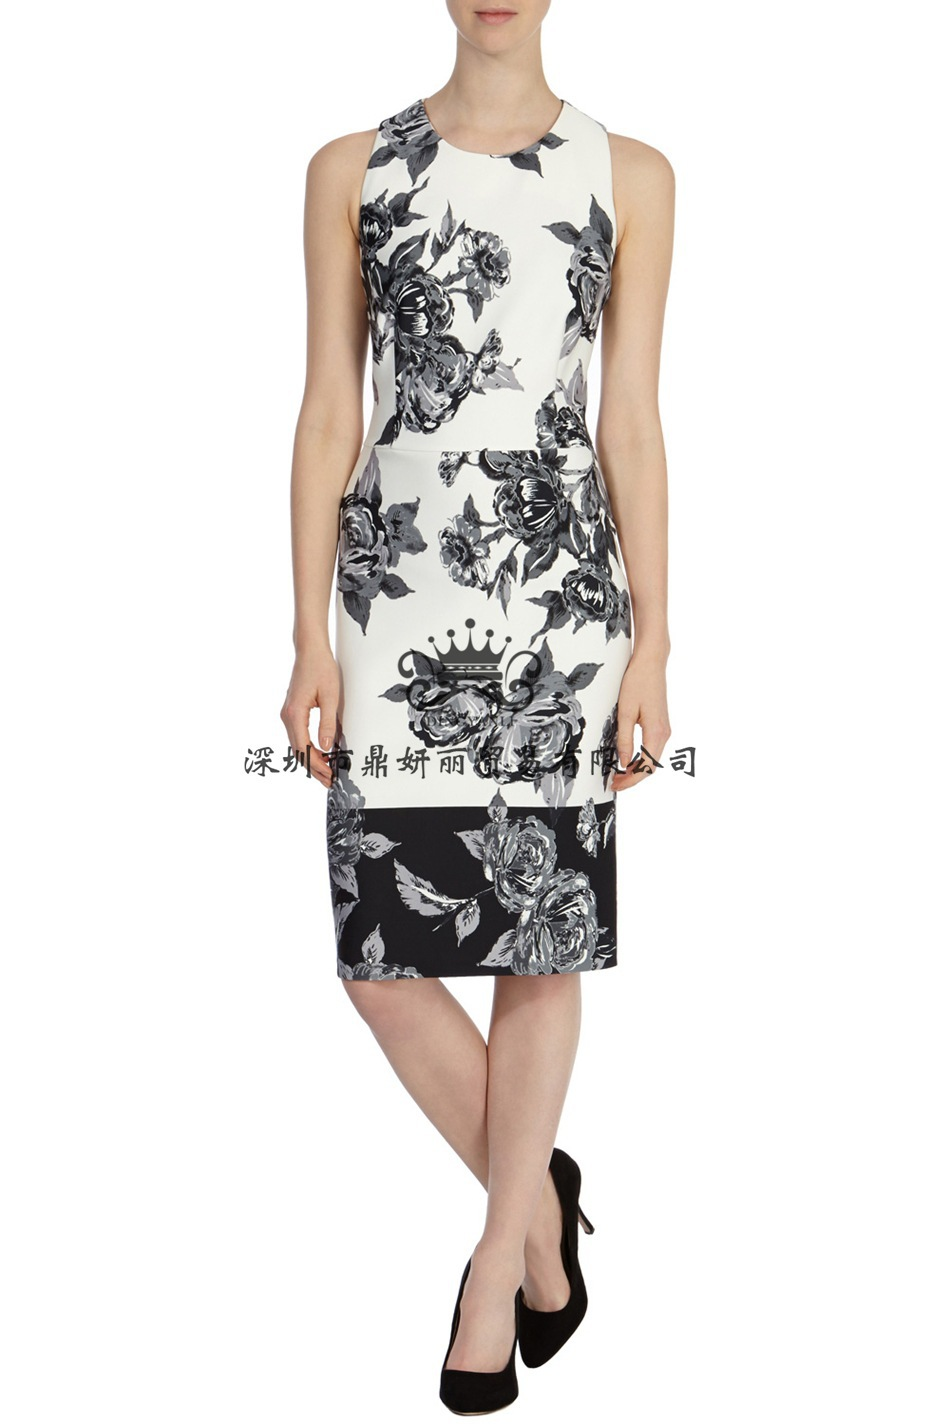 2015 New Arrival Star Runway Fashion Brand Desigual Plus Size XXXL Summer Women Sleeveeless Printed Slim Vintage Sexy Party Dres(China (Mainland))